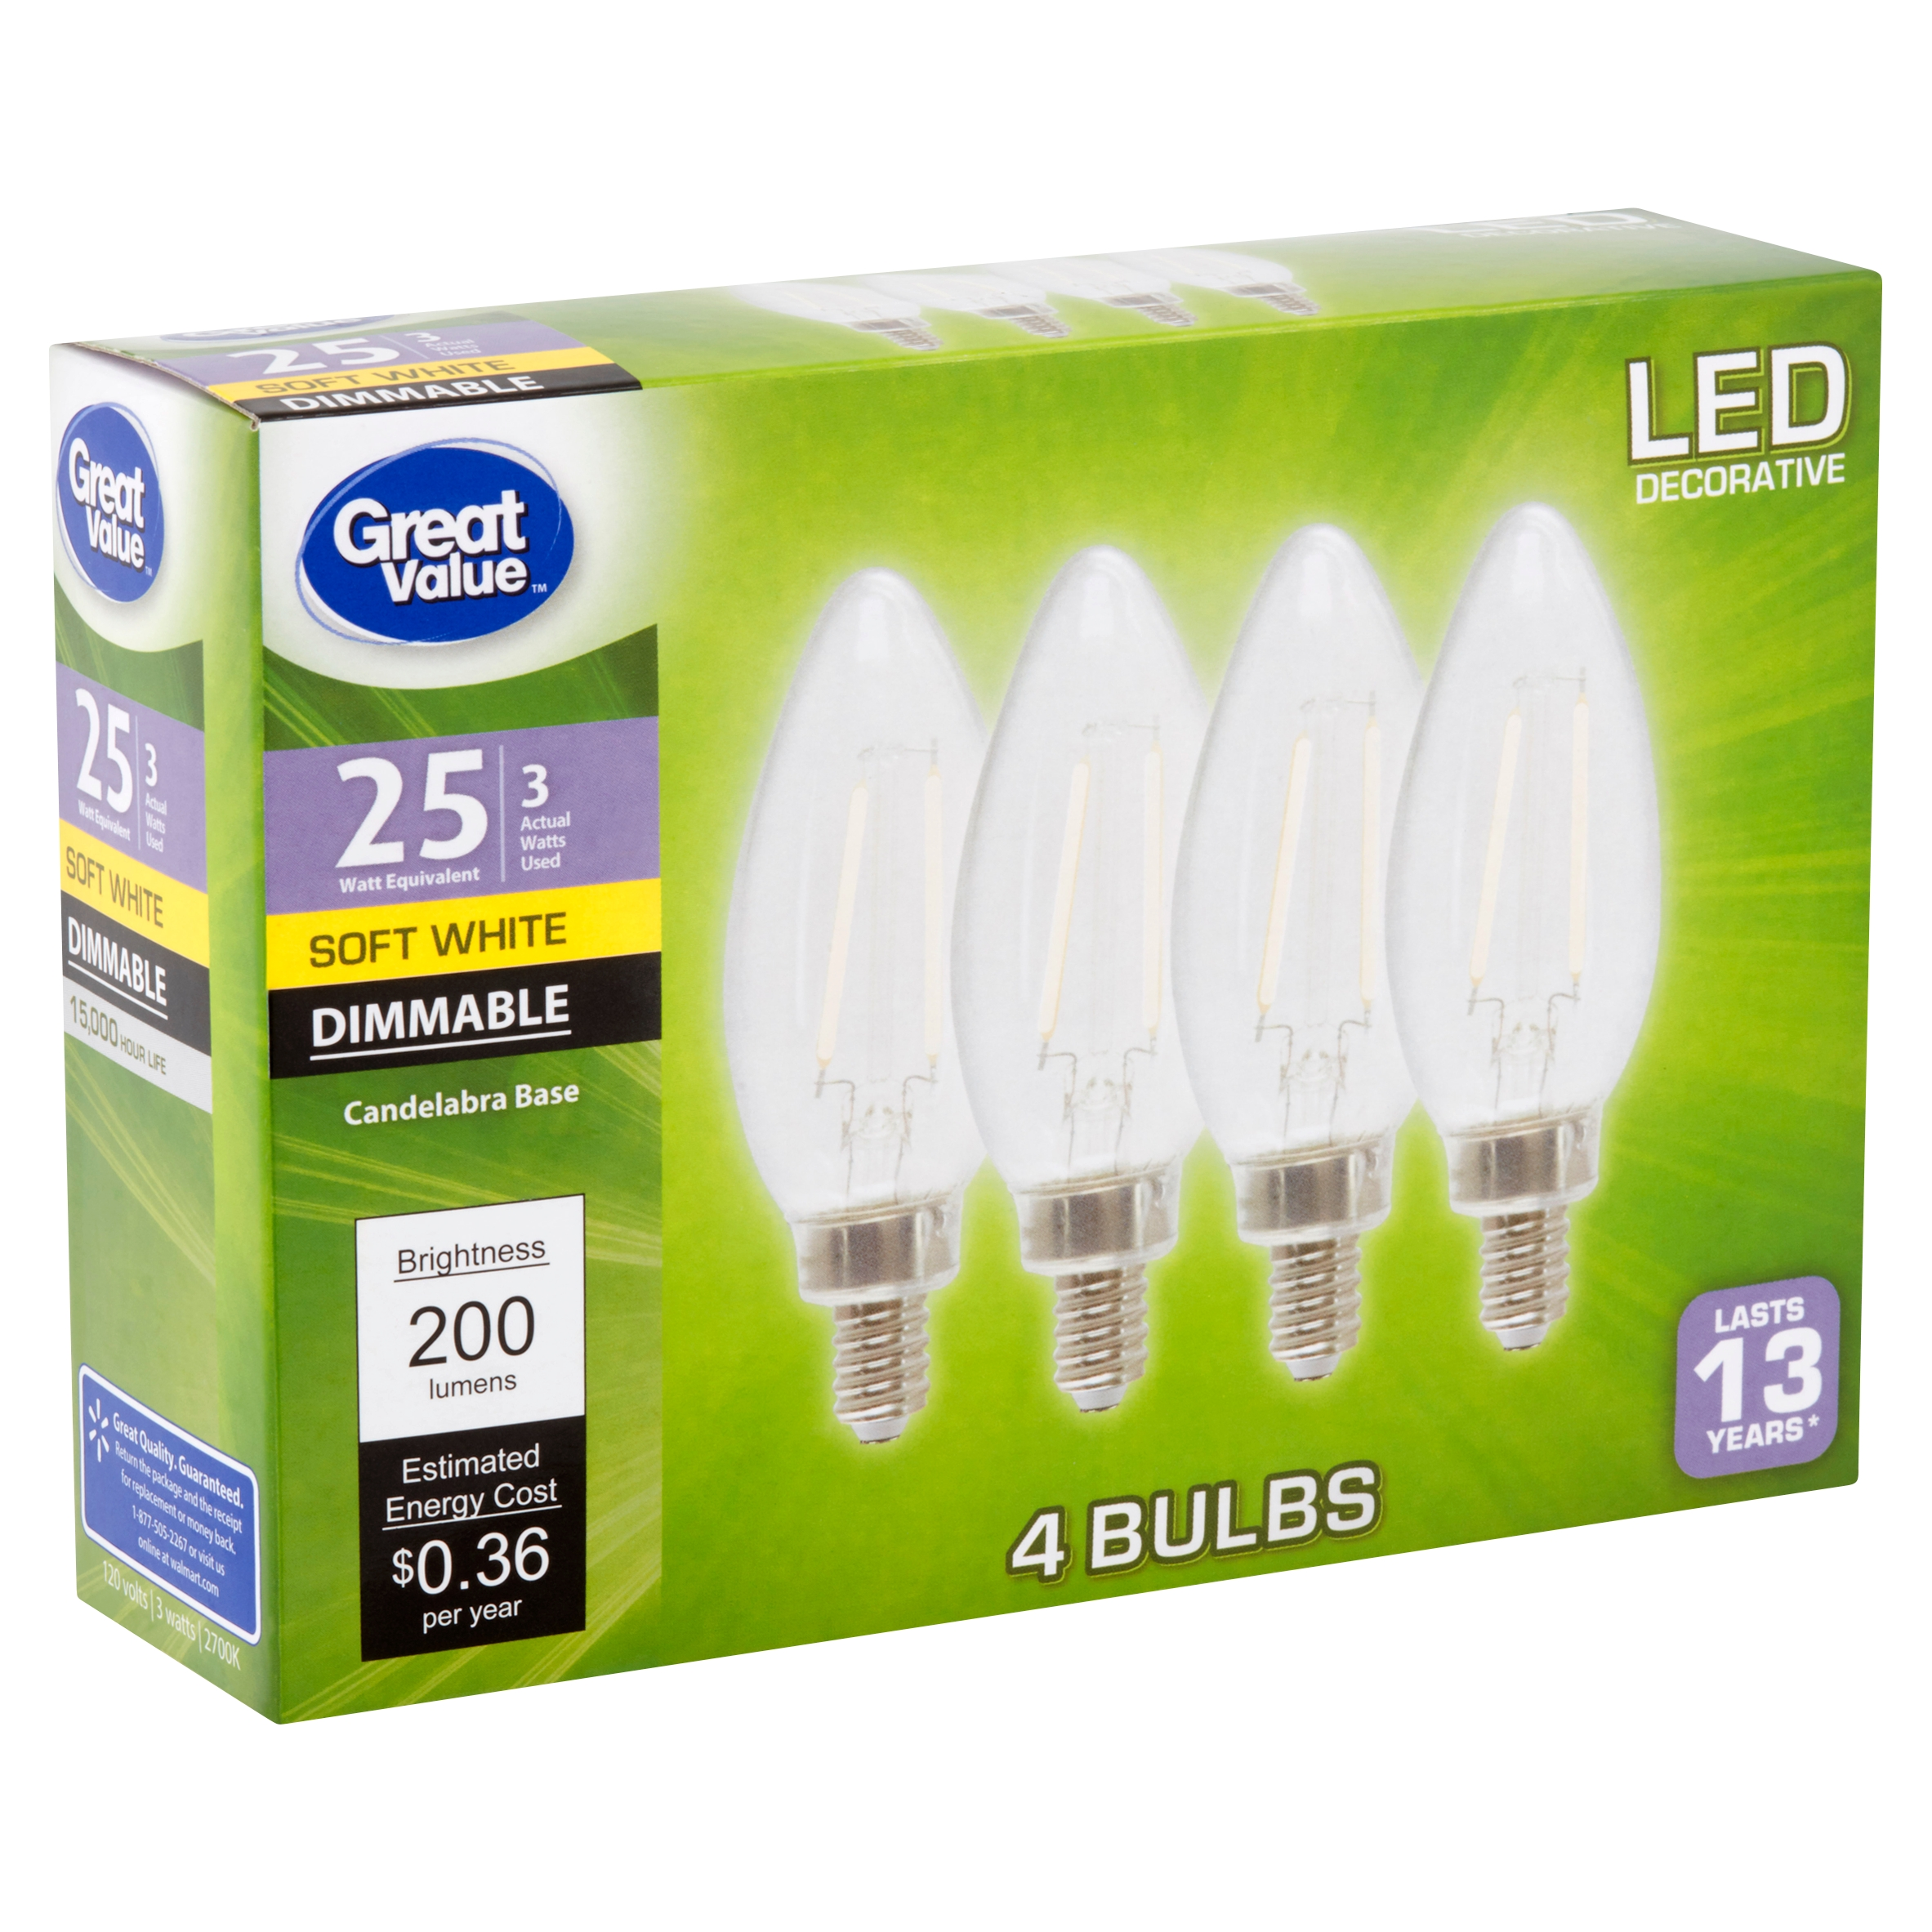 Great Value LED 3 Watts Decorative Soft White Candelabra Base Bulbs, 4 count